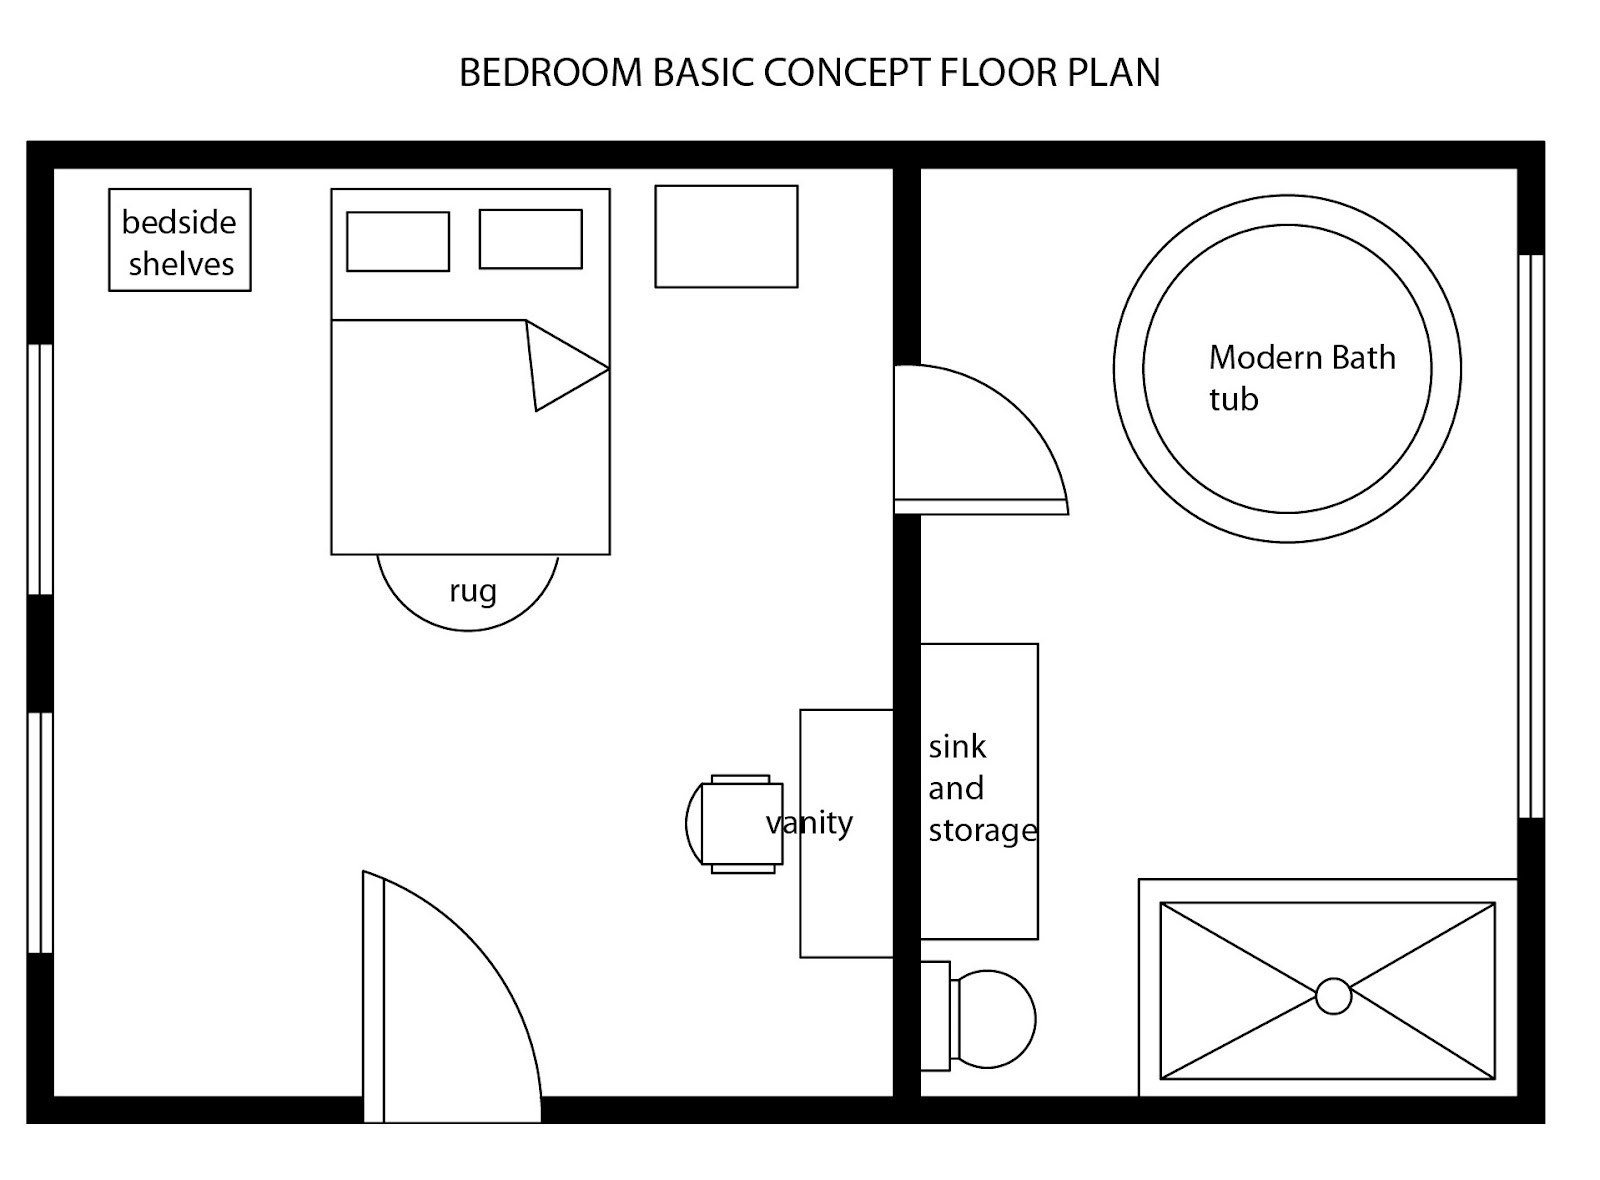 Interior design decor modern bedroom basic floor plan Master bedroom plan dwg